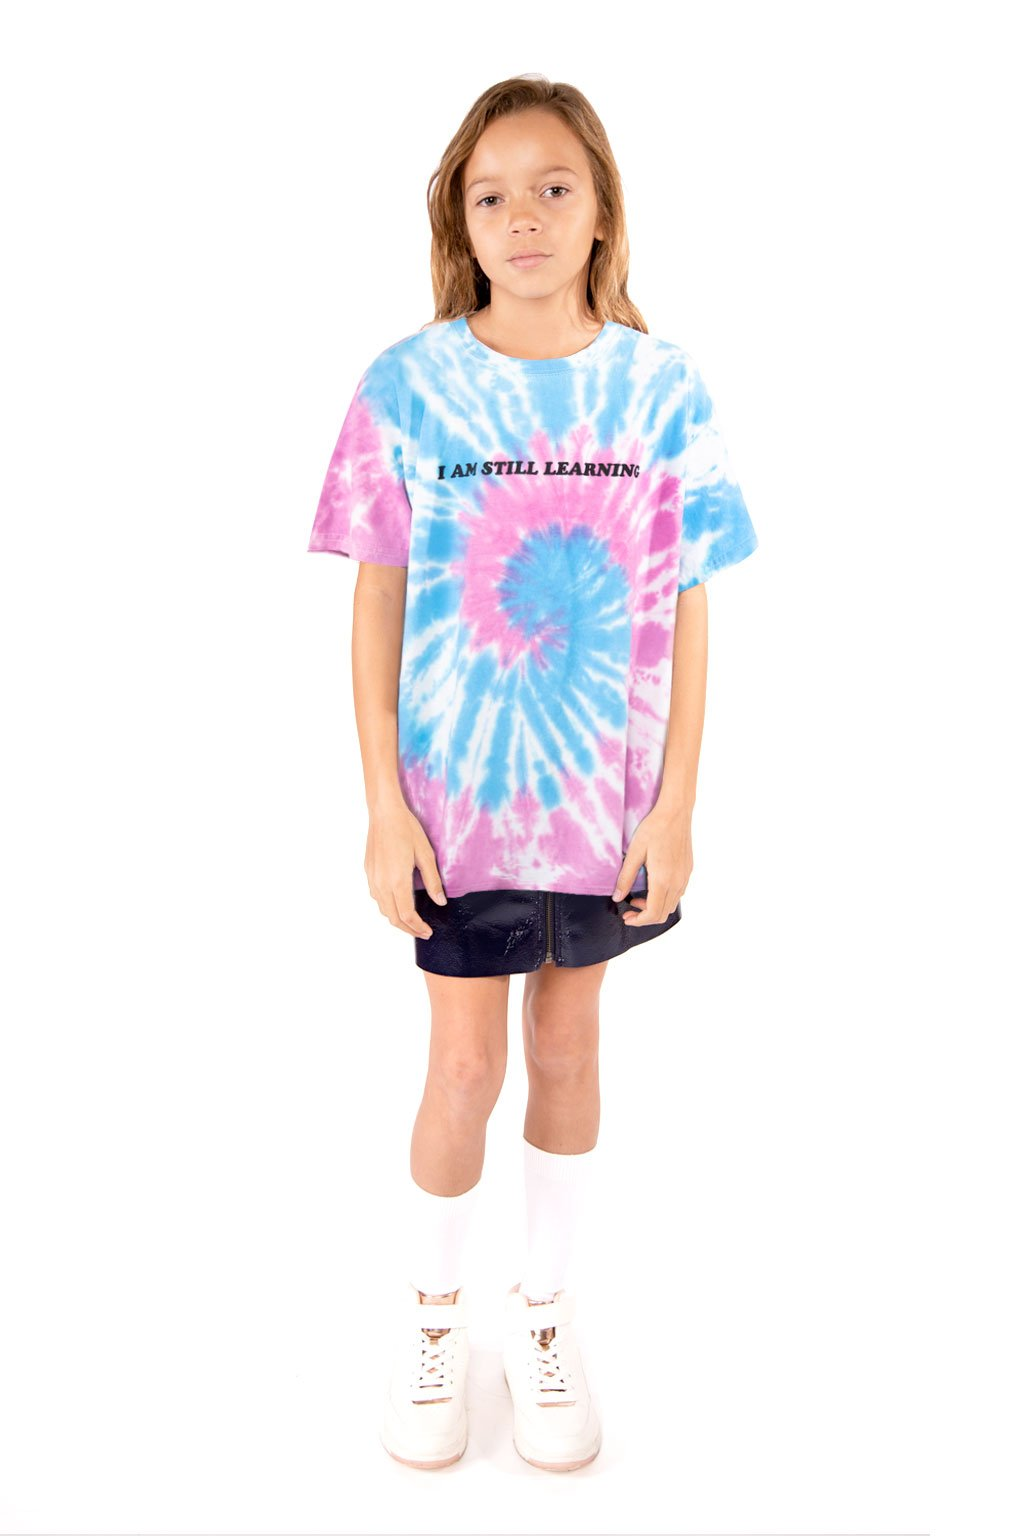 Blue & Pink Tie-Dye T-Shirt - Port 213.com